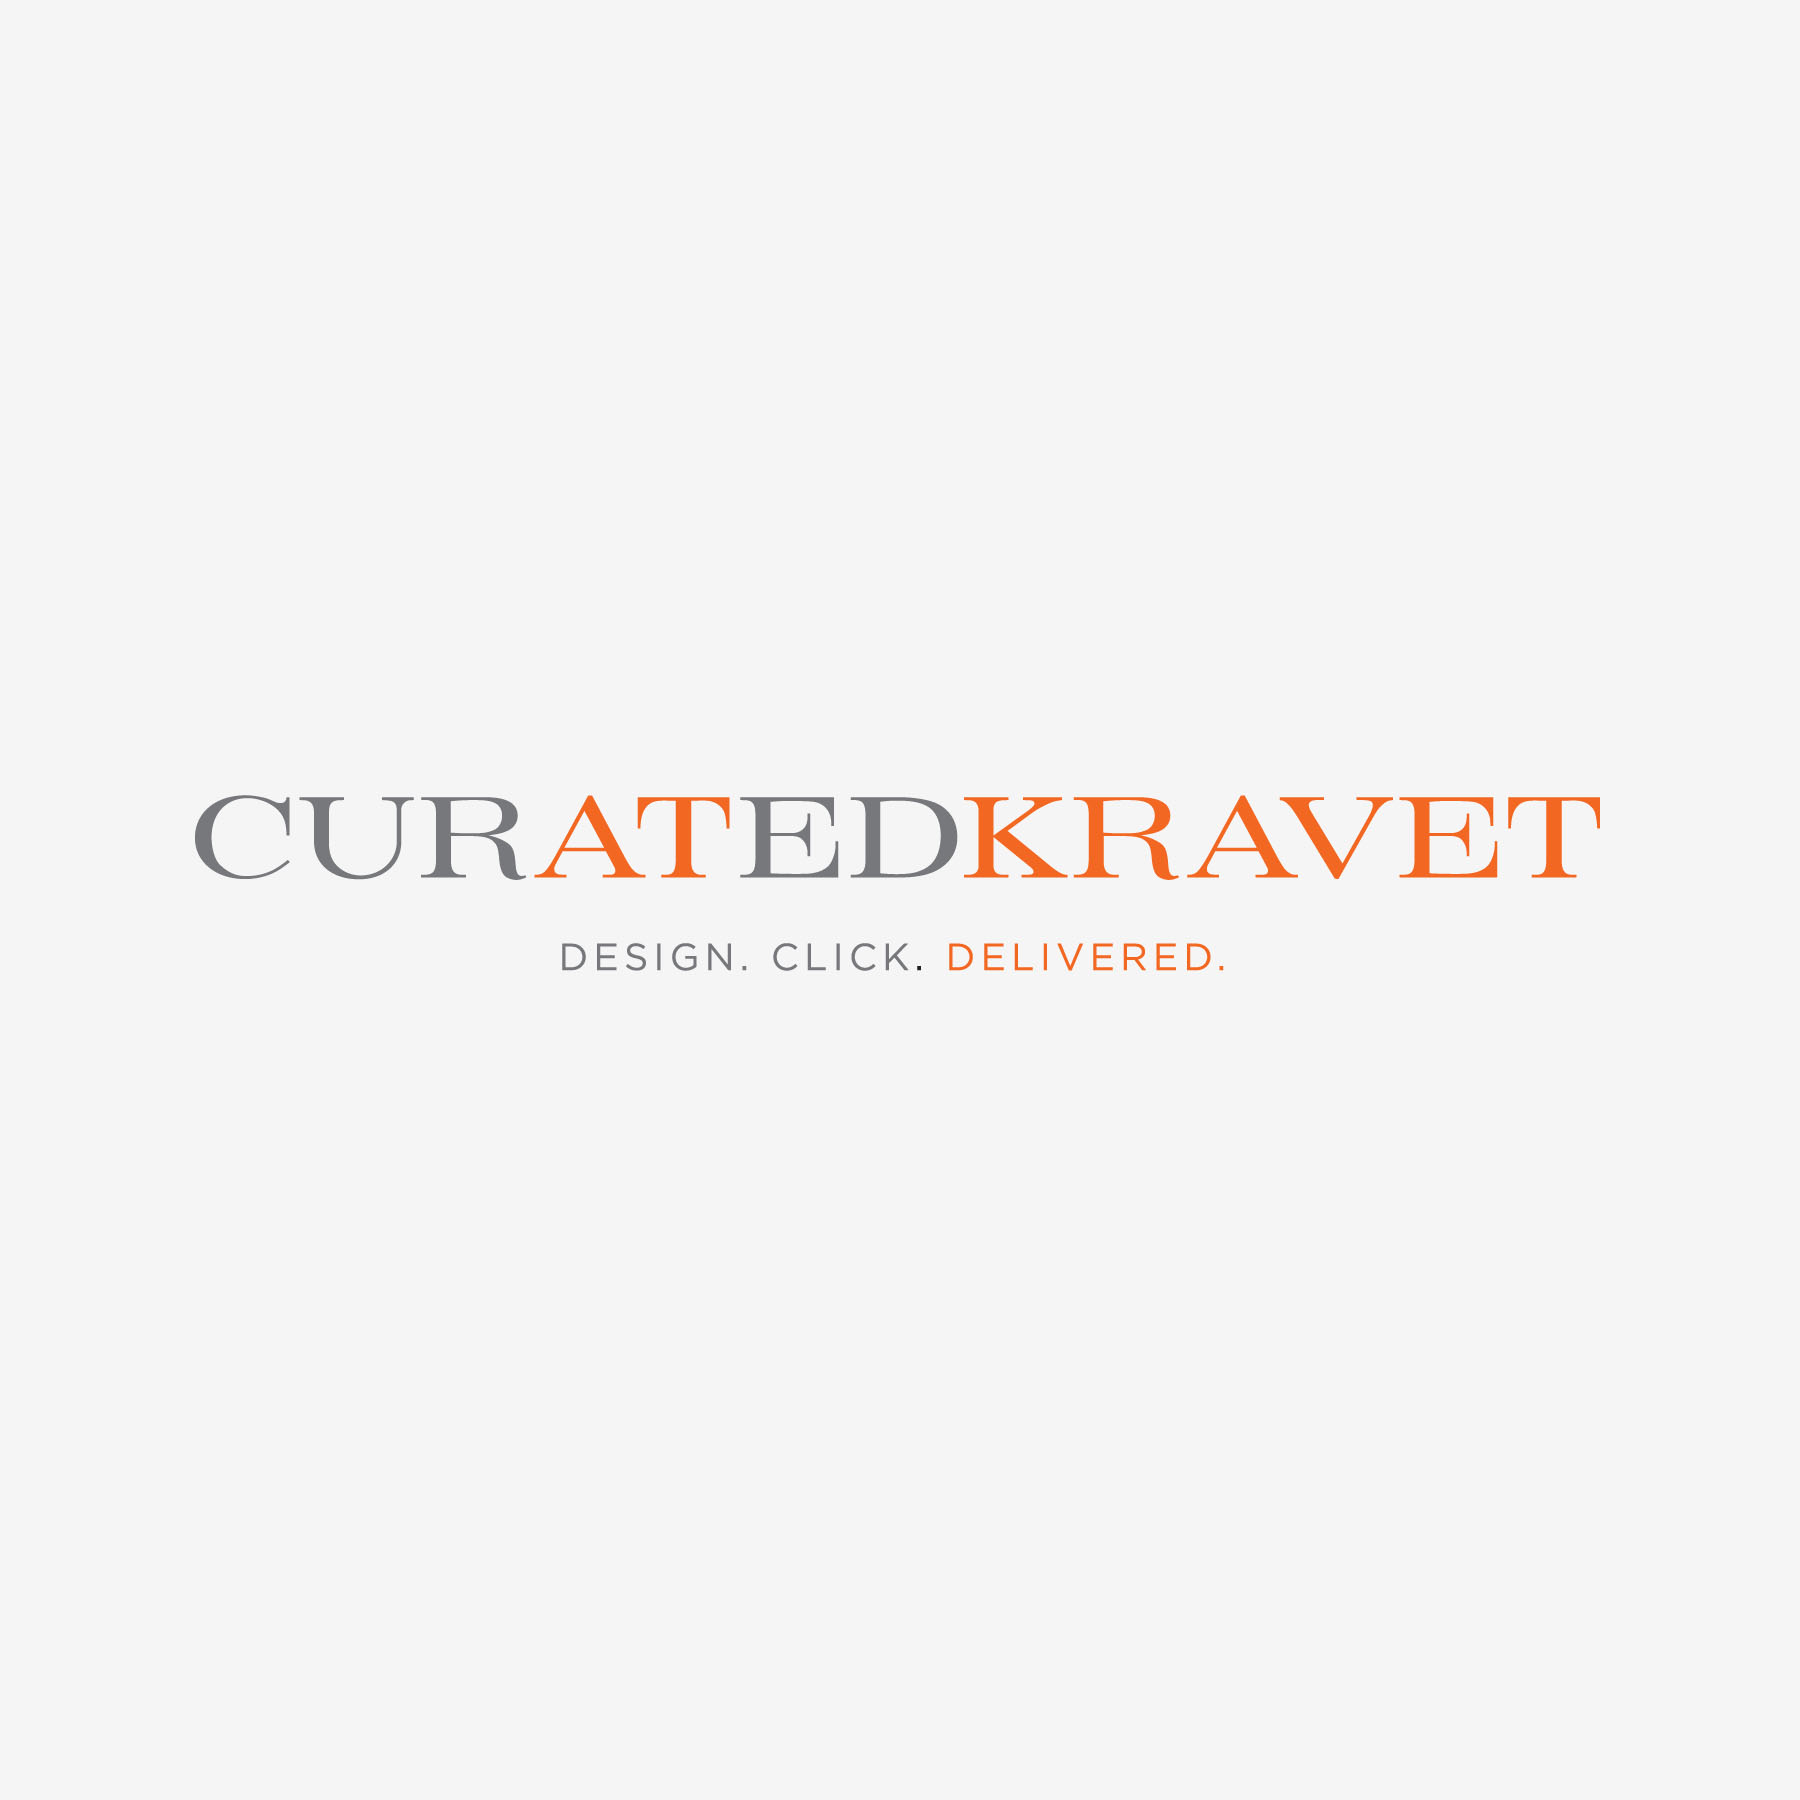 Curated Kravet - Logo and tagline developed to point designers to Kravet, Inc as an e-commerce source for shopping home furnishings products for their clients with emphasis on the simple process: design. click. delivered.